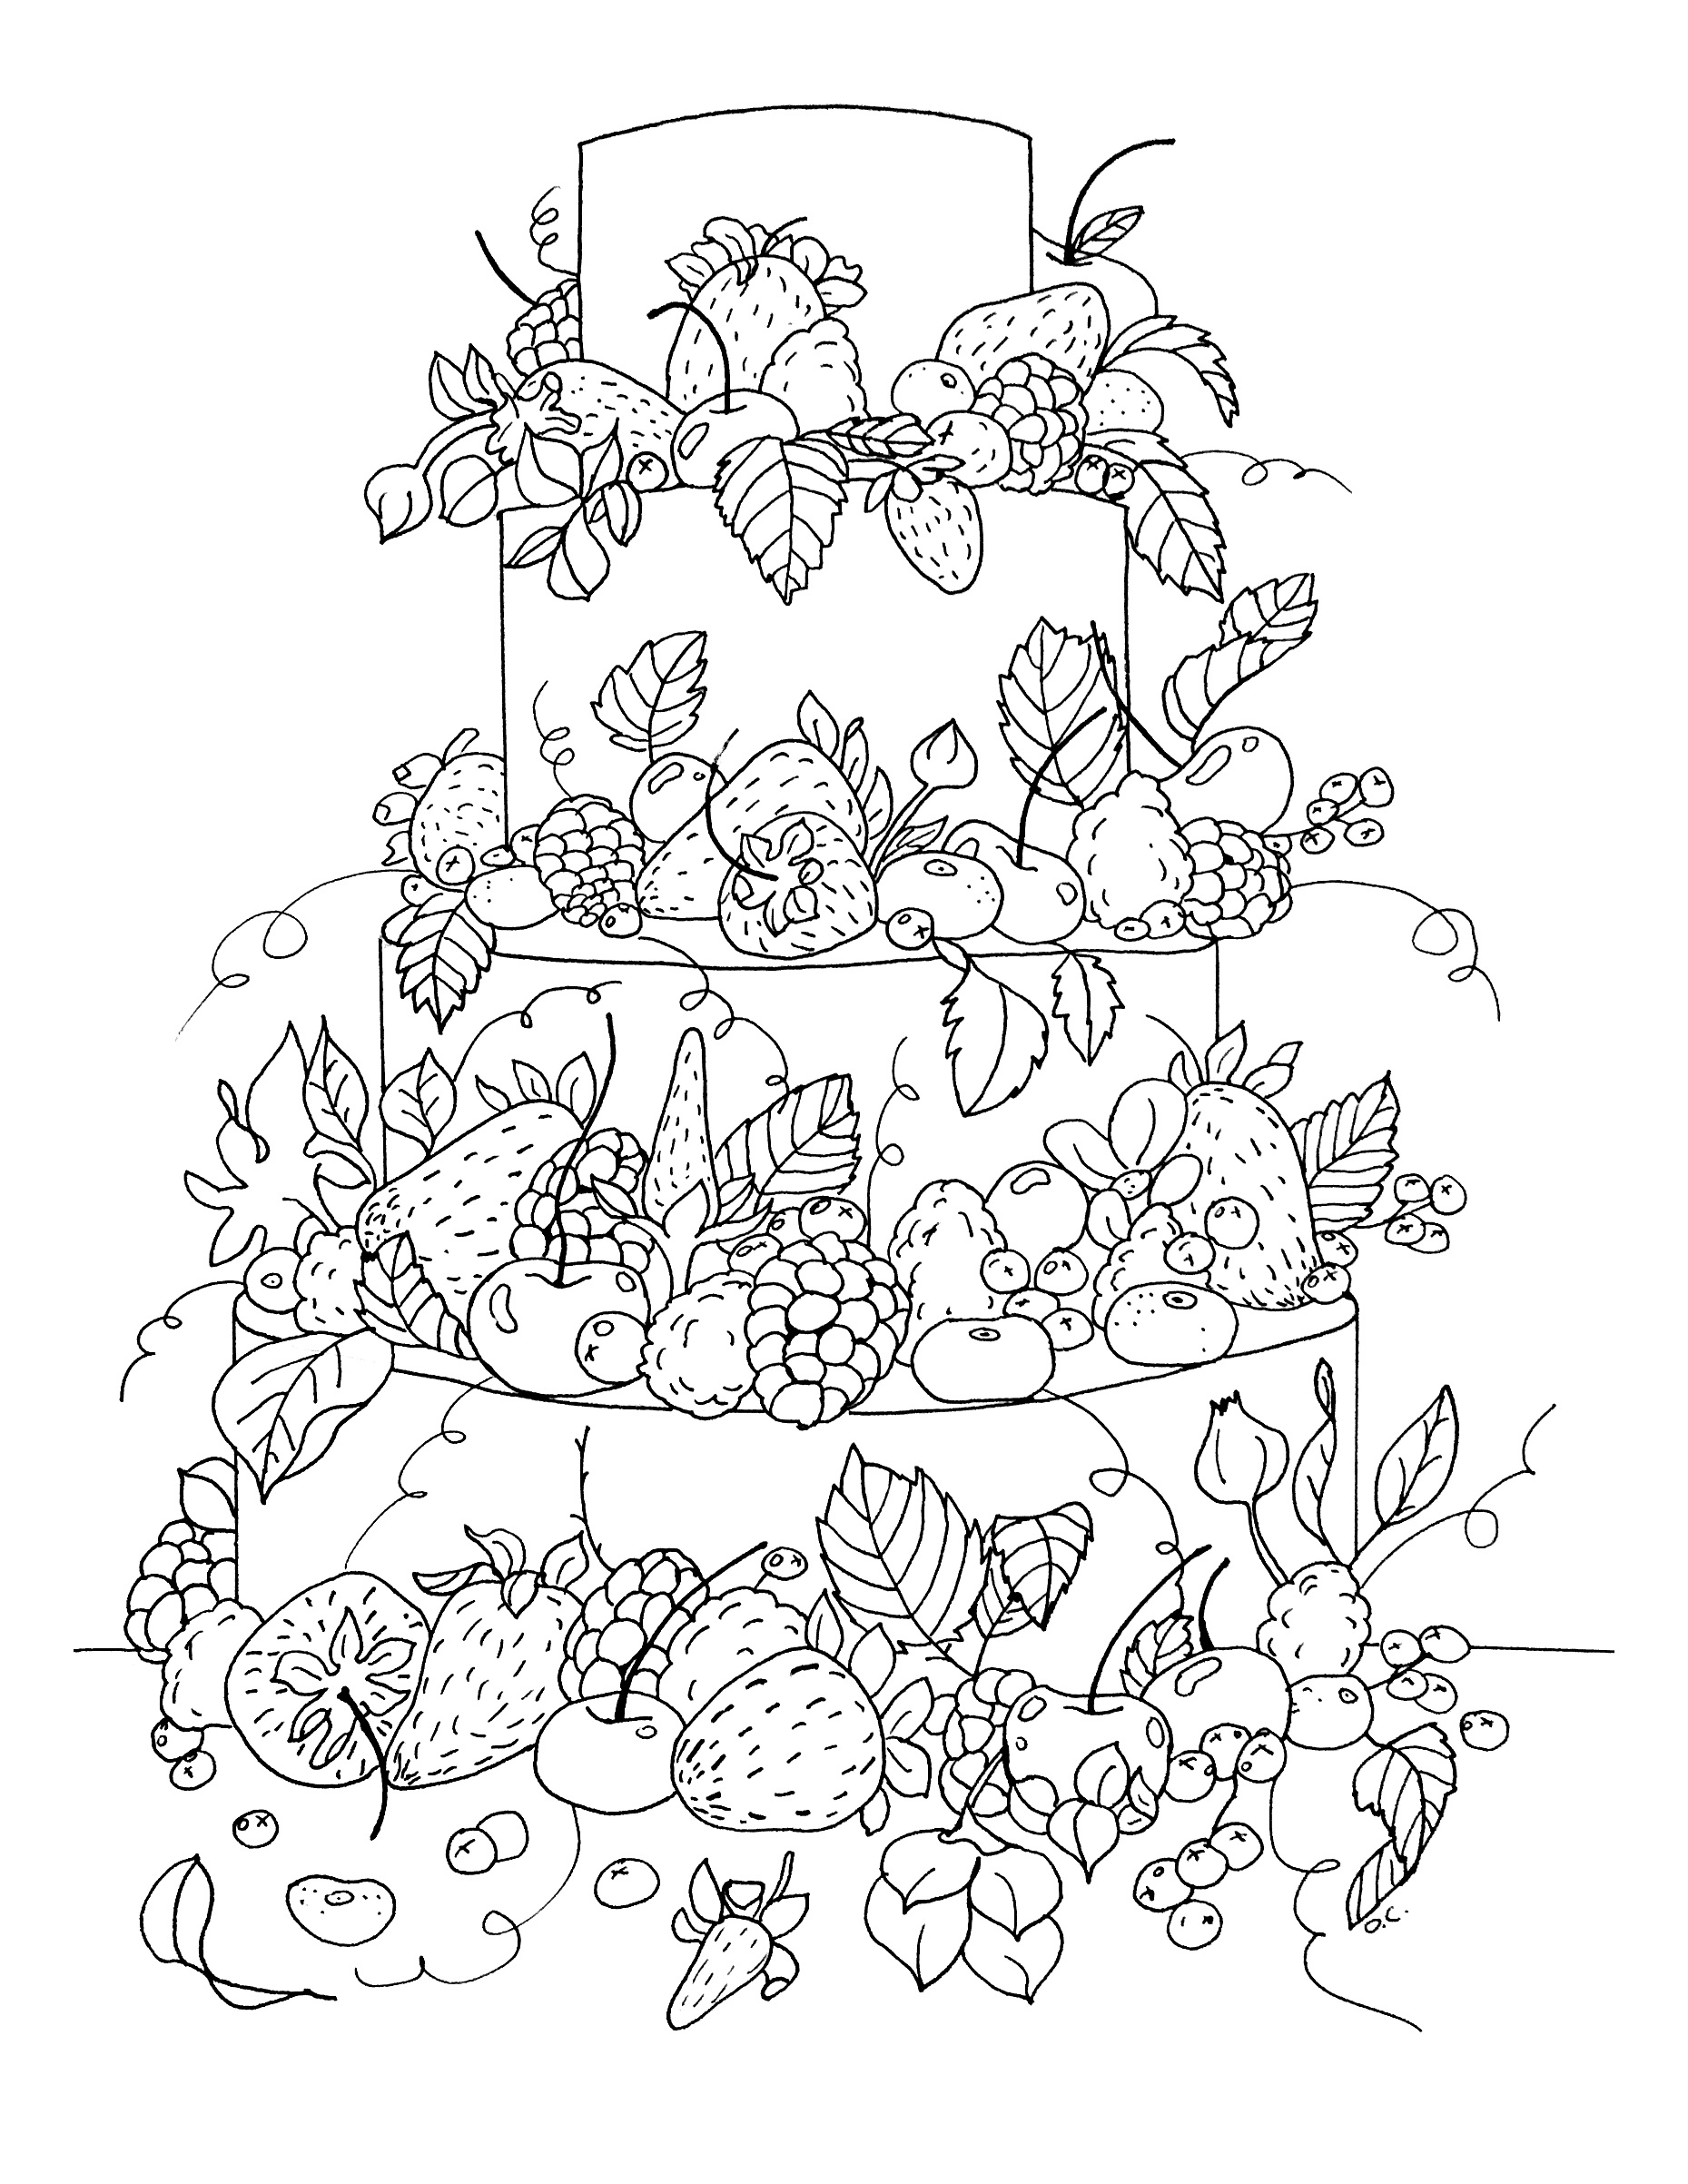 Free Adult coloring page to download